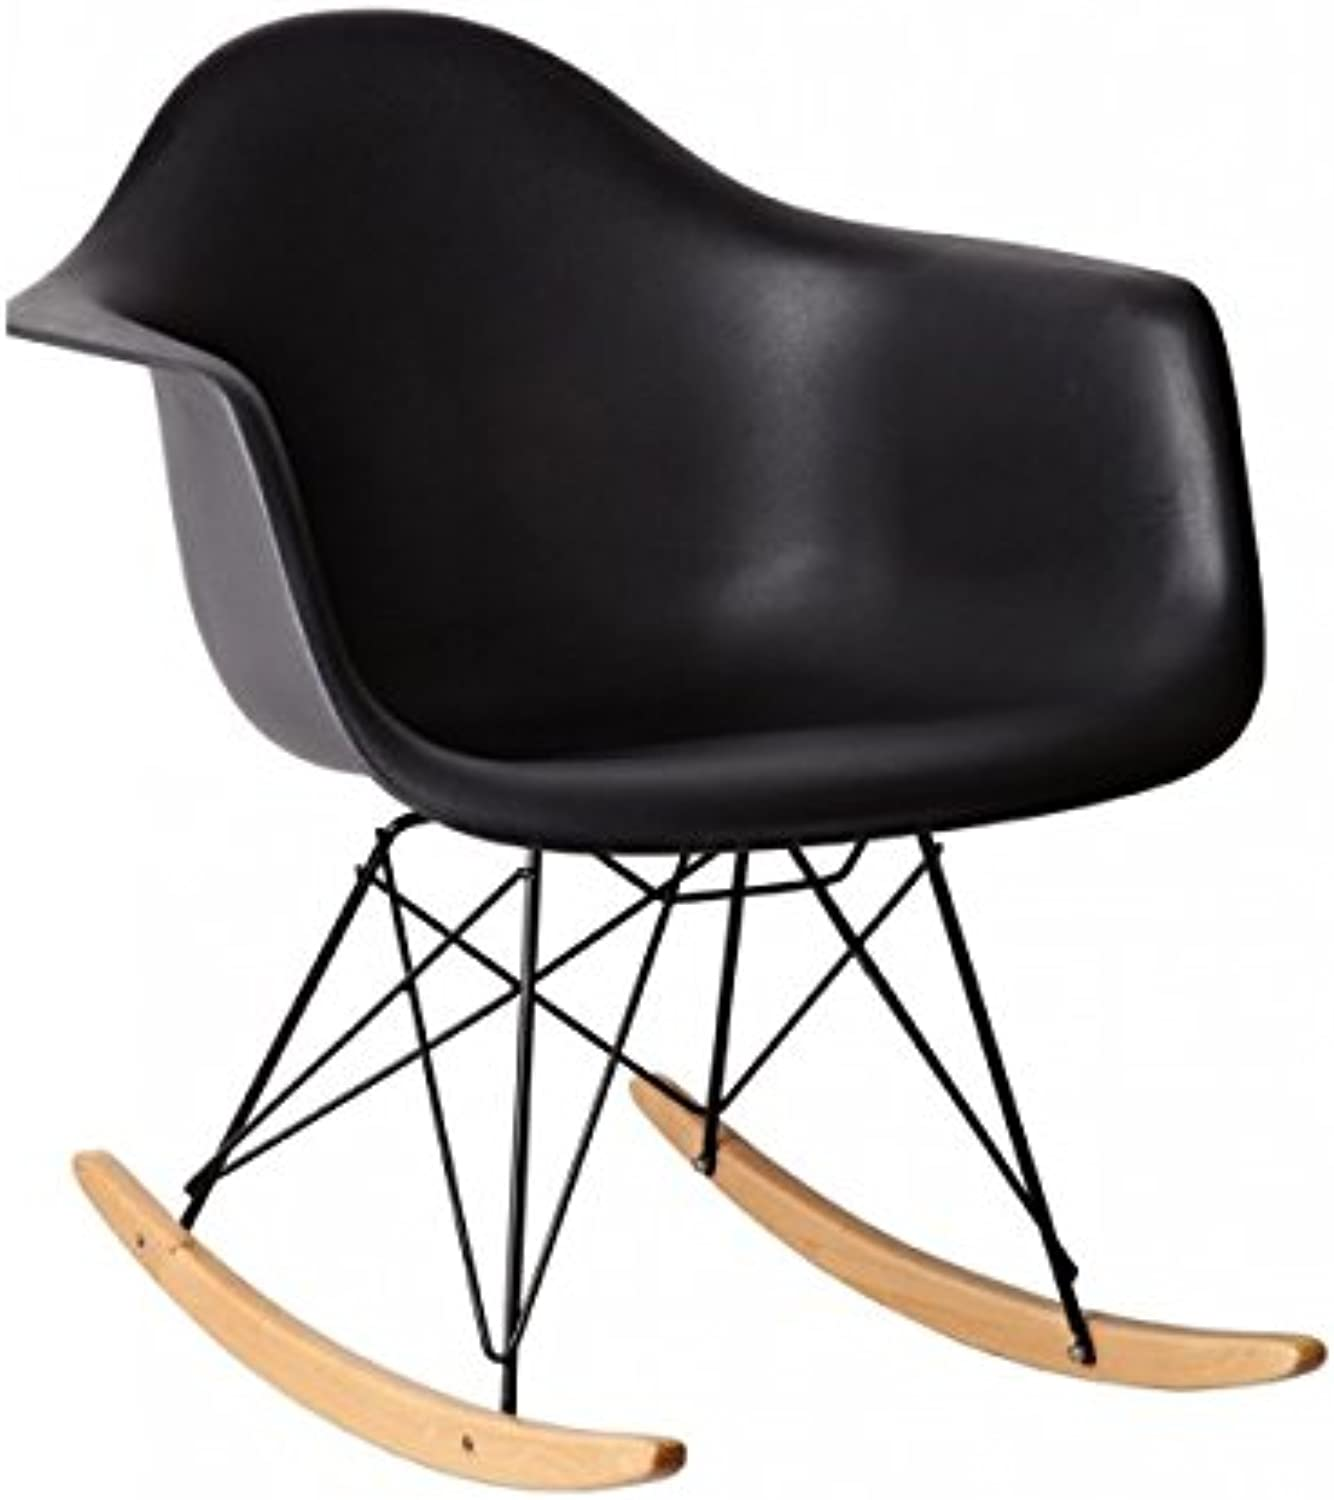 HomeCraft Eames Style Molded Modern Plastic Armchair-Rocking Mid Century Style Lounge Cradle Arm Chair-Contemporary Accent Retro Rocker Chrome Steel Eiffel Base-Ash Wood Rockers-Nursery Living Room-Matte Finish in Black